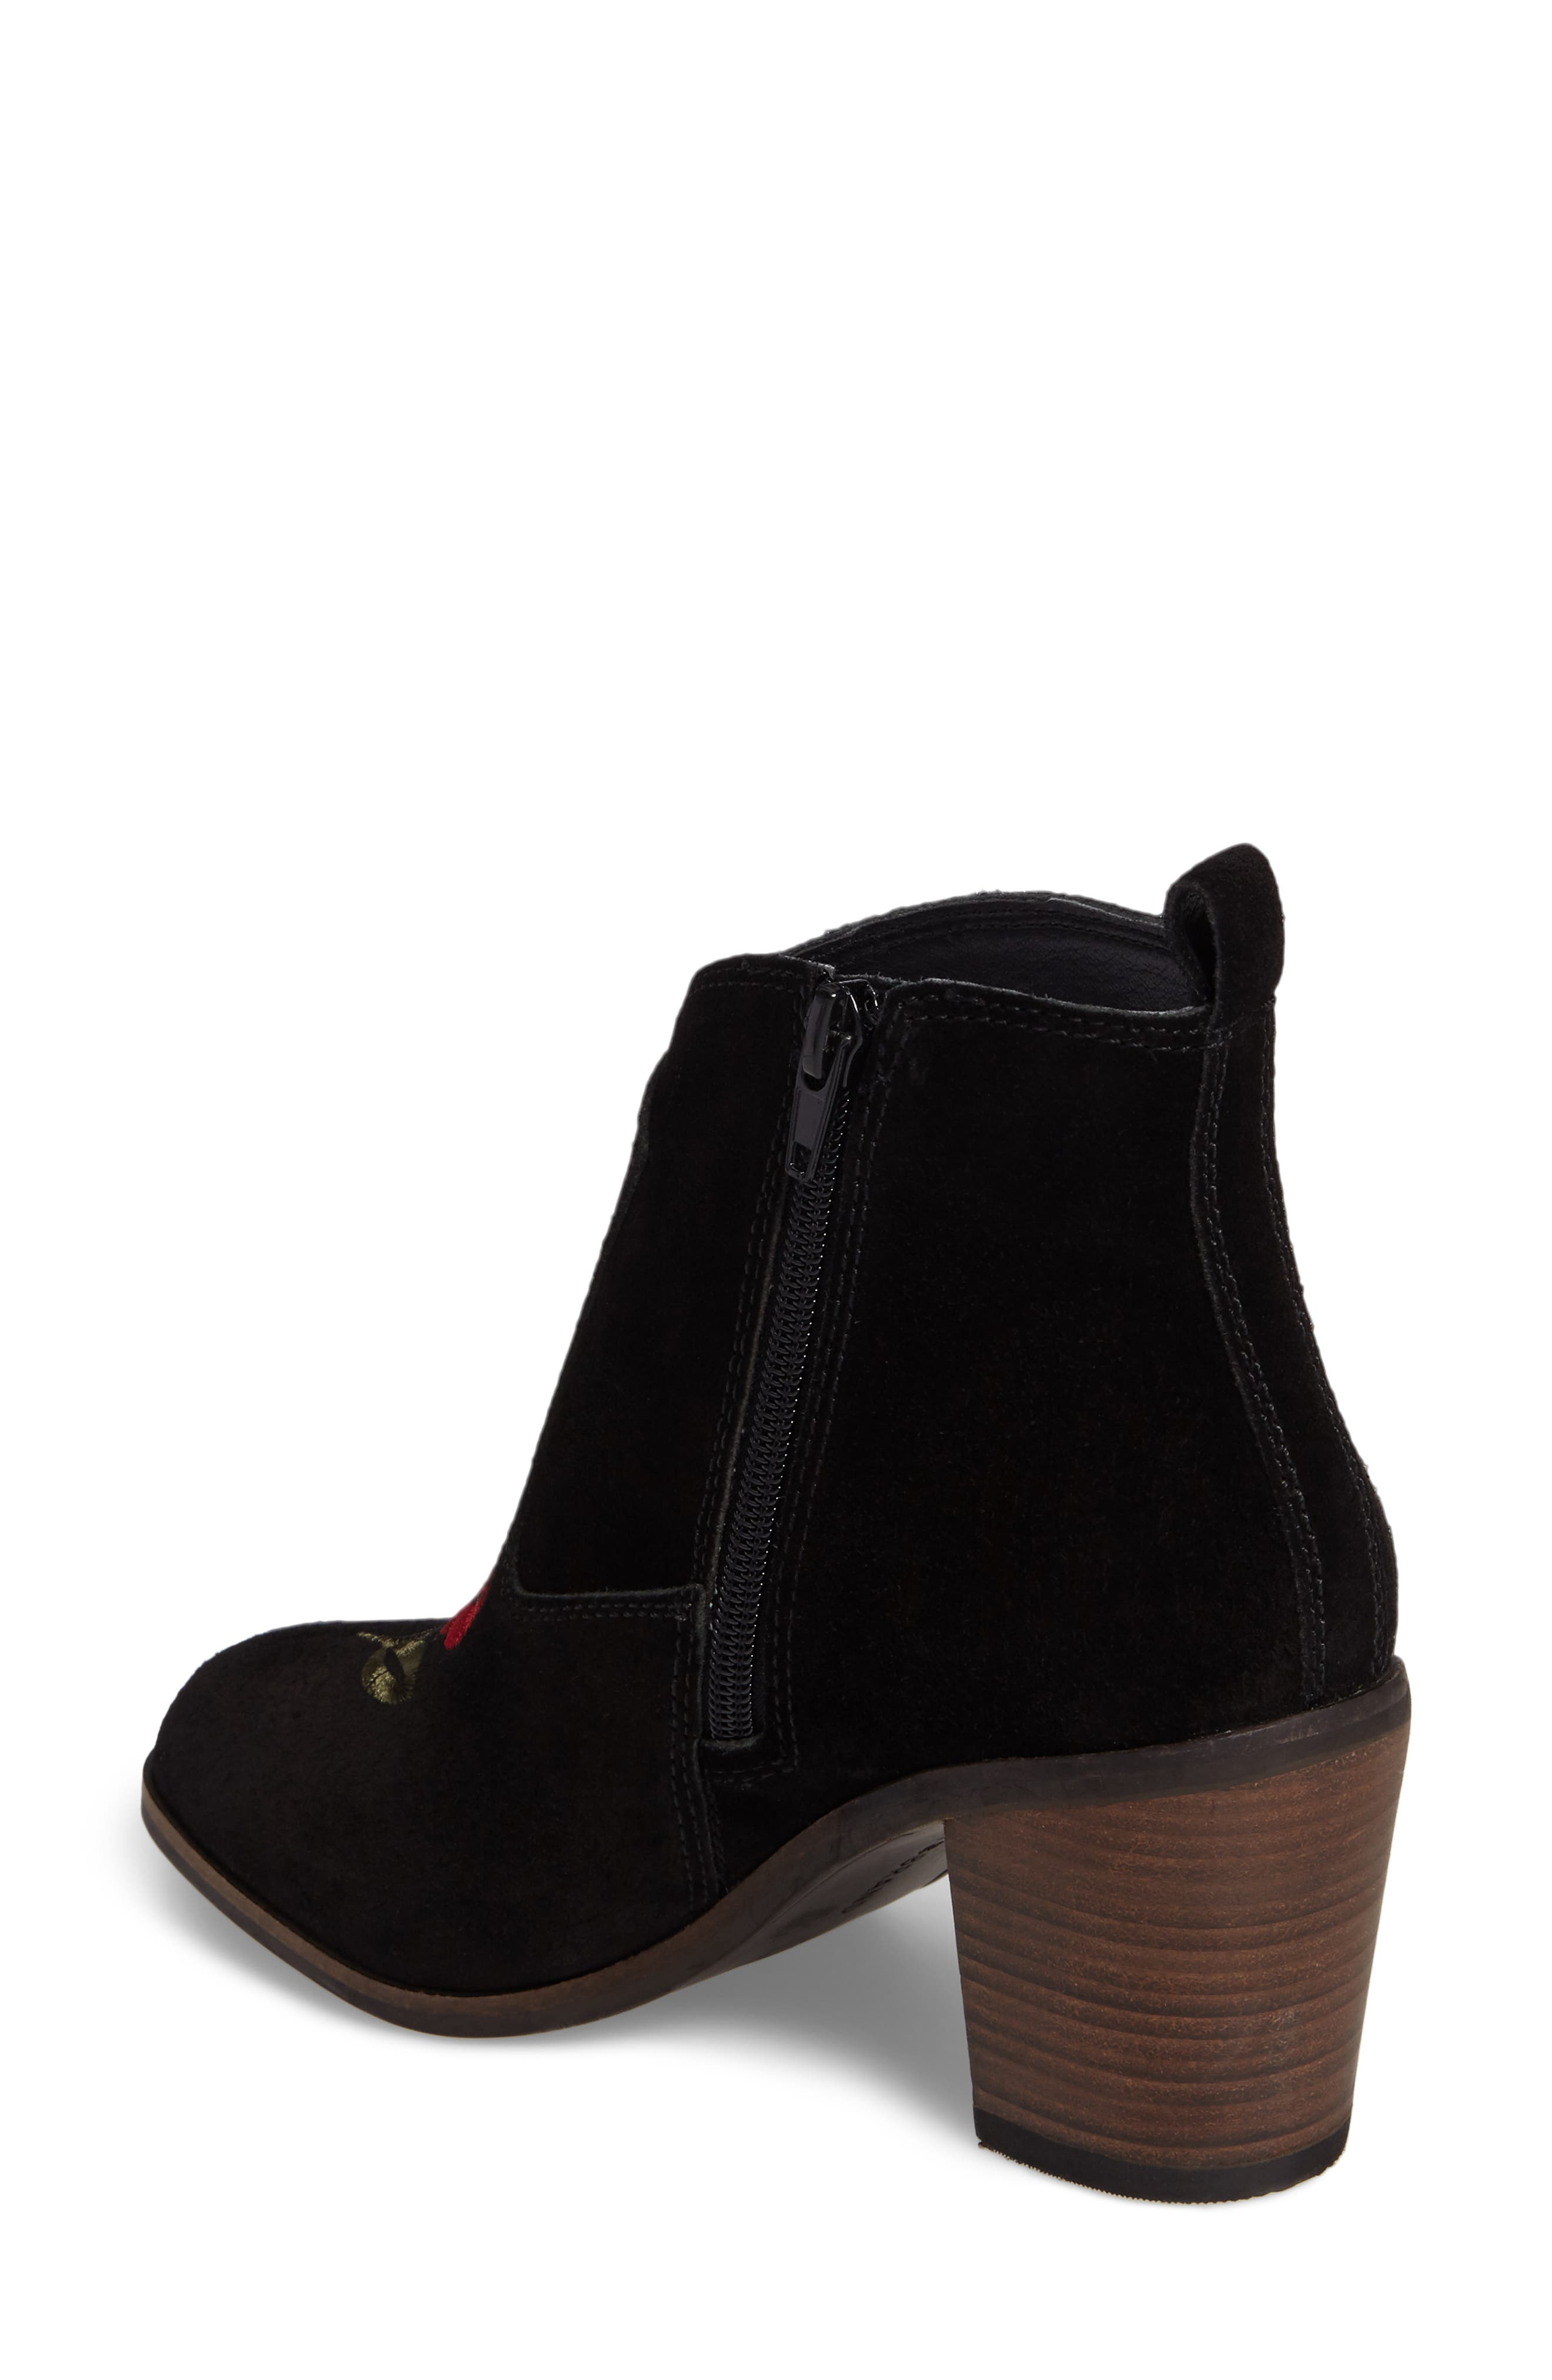 Pexton Embroidered Bootie,                             Alternate thumbnail 2, color,                             002